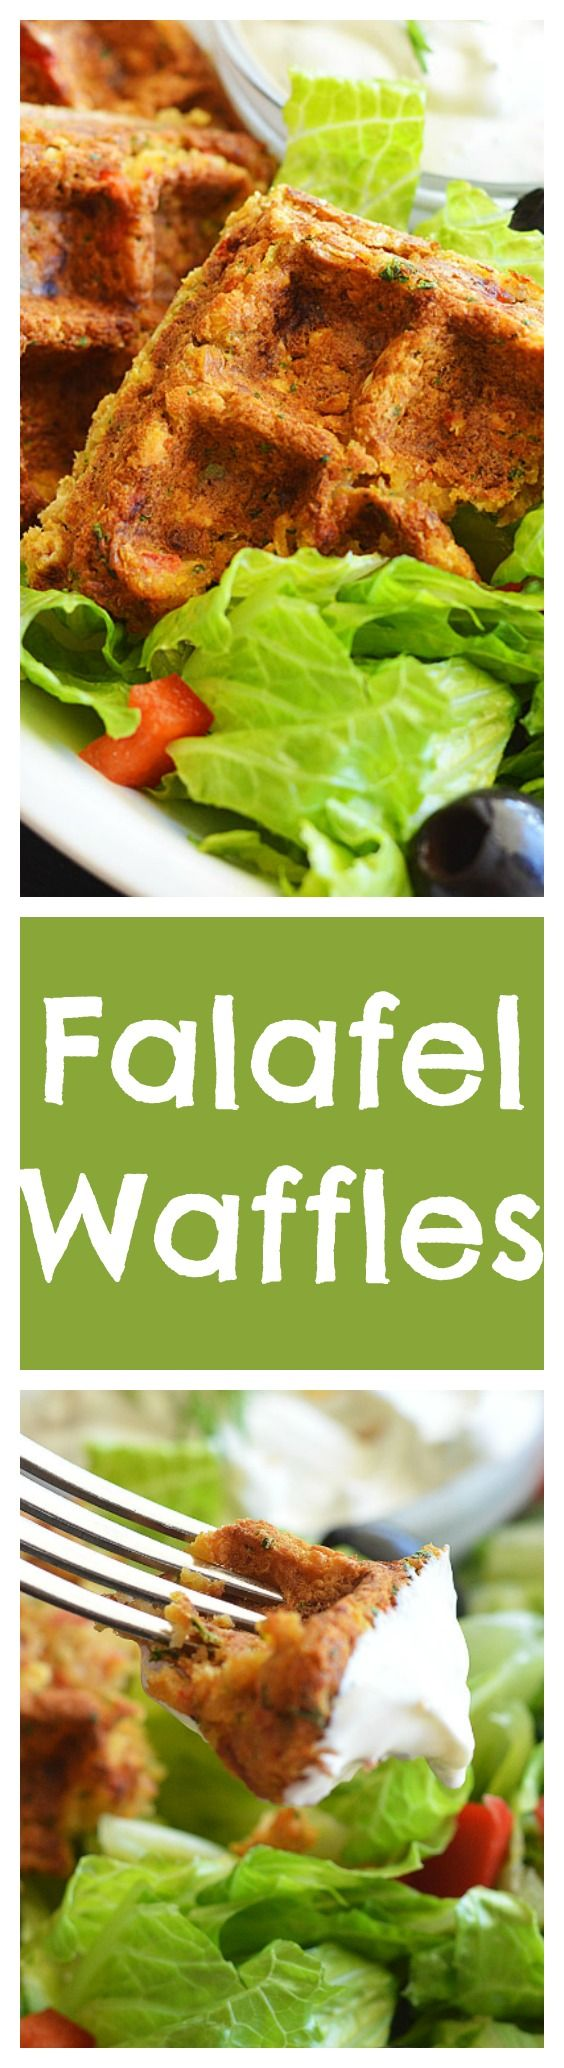 Falafel Waffles with Creamy Dill Sauce